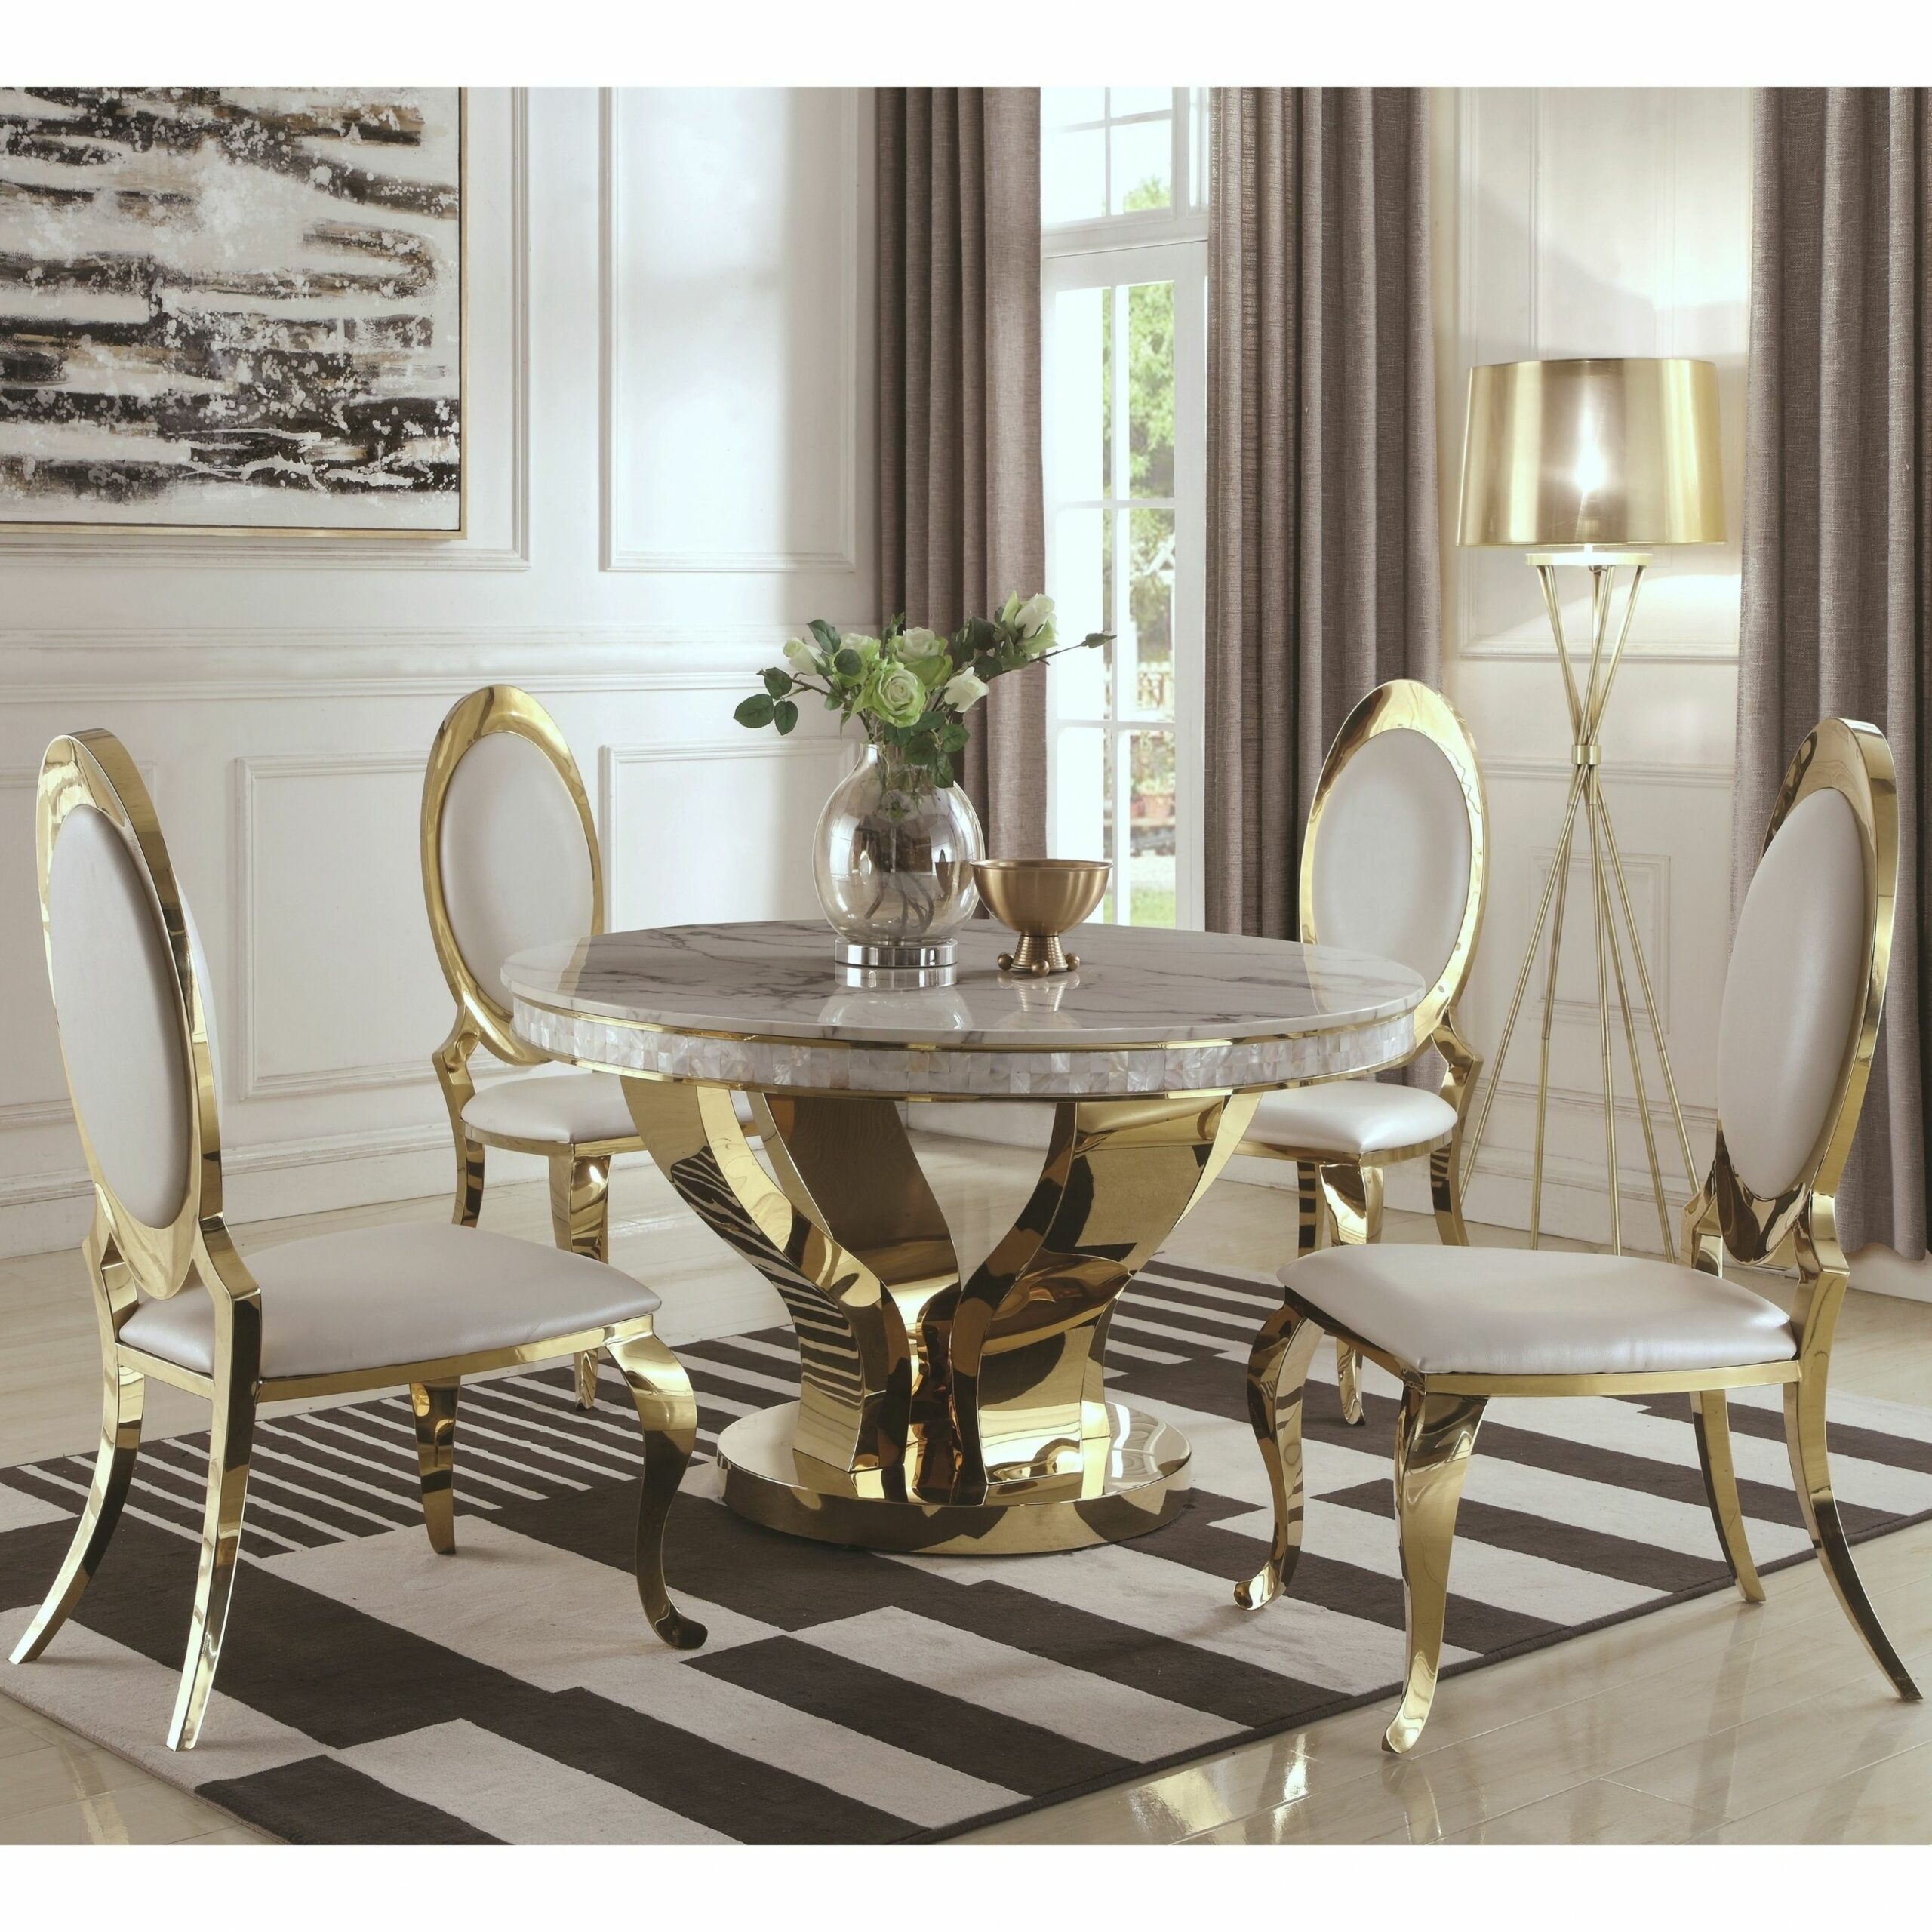 Luxurious Modern Design 9-piece Gold Dining Set with Marble Table ..